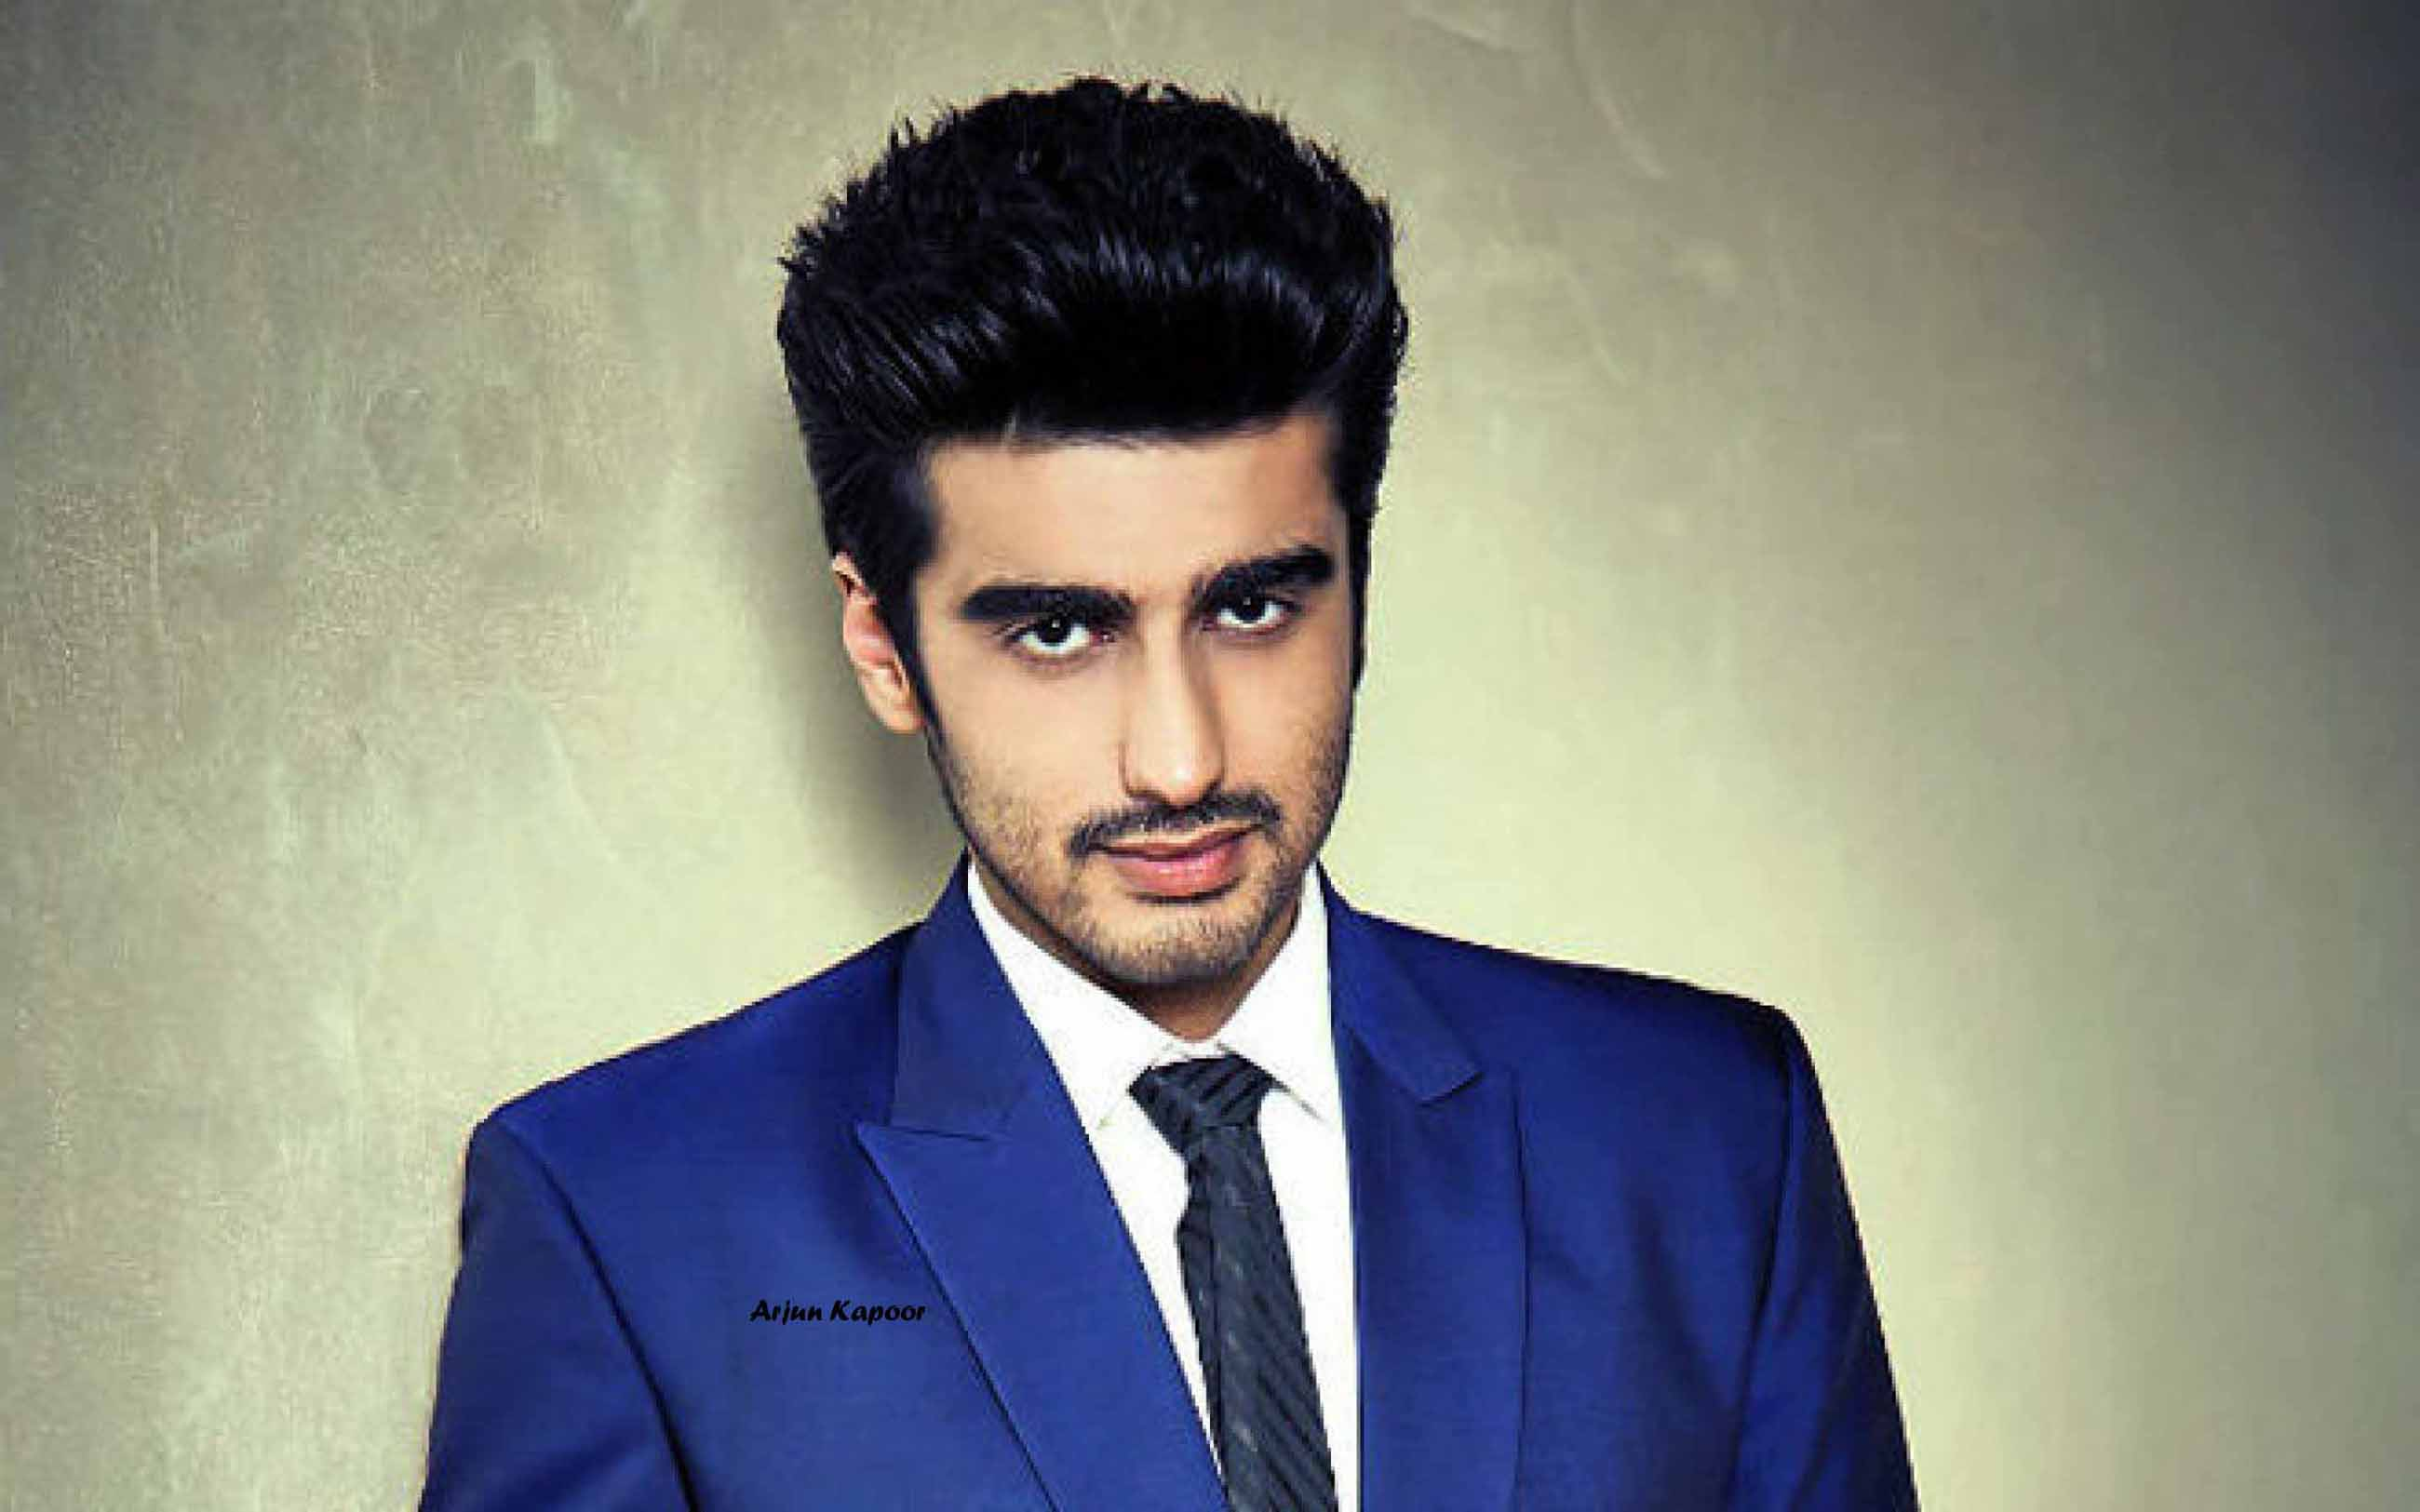 Handsome Arjun Kapoor Photos